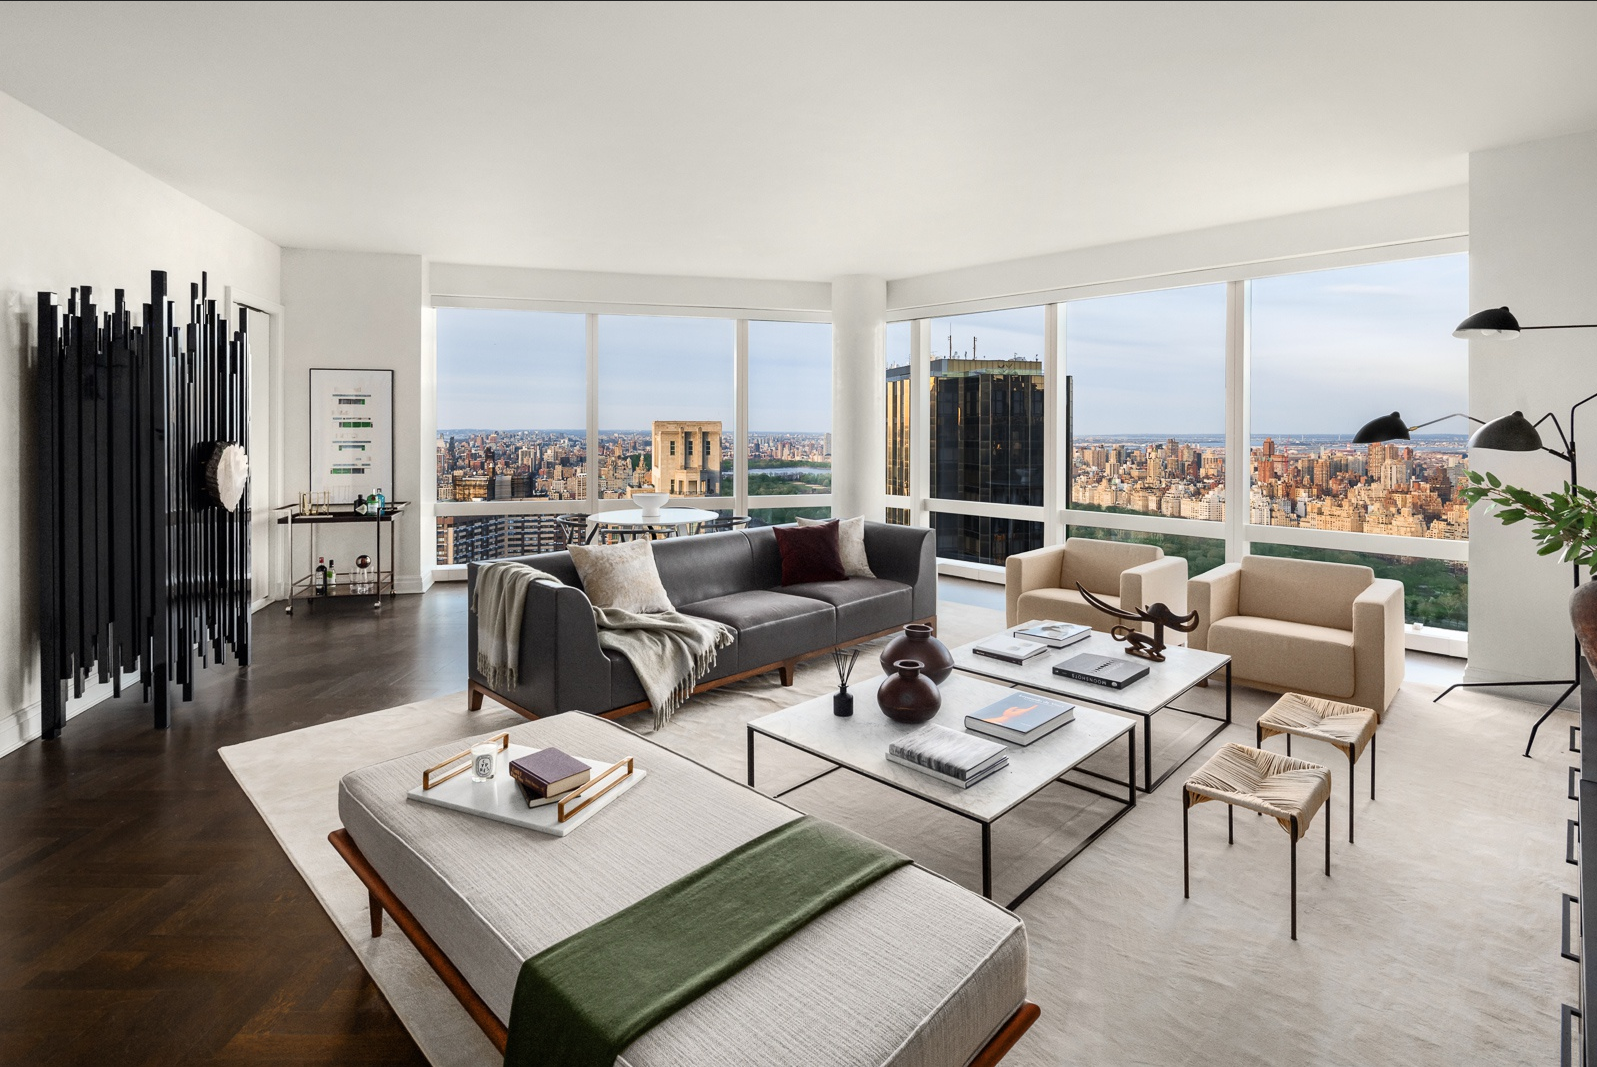 25 COLUMBUS CIRCLE, 68AF - $15,700,000 // 5 Beds // 5.5 Baths // 4,050 SQFTA palatial corner condo graced with breathtaking views of Central Park, the Hudson River, the Statue of Liberty, and the city skyline, this 5-bedroom, 5.5-bathroom home is a paragon of contemporary Manhattan luxury. Features of this 4,050 sq. ft. apartment include gorgeous hardwood floors, floor-to-ceiling windows with northern, eastern, and western exposure, a butler's pantry equipped with a kitchenette, and a pair of convenient in-home washers/dryers.